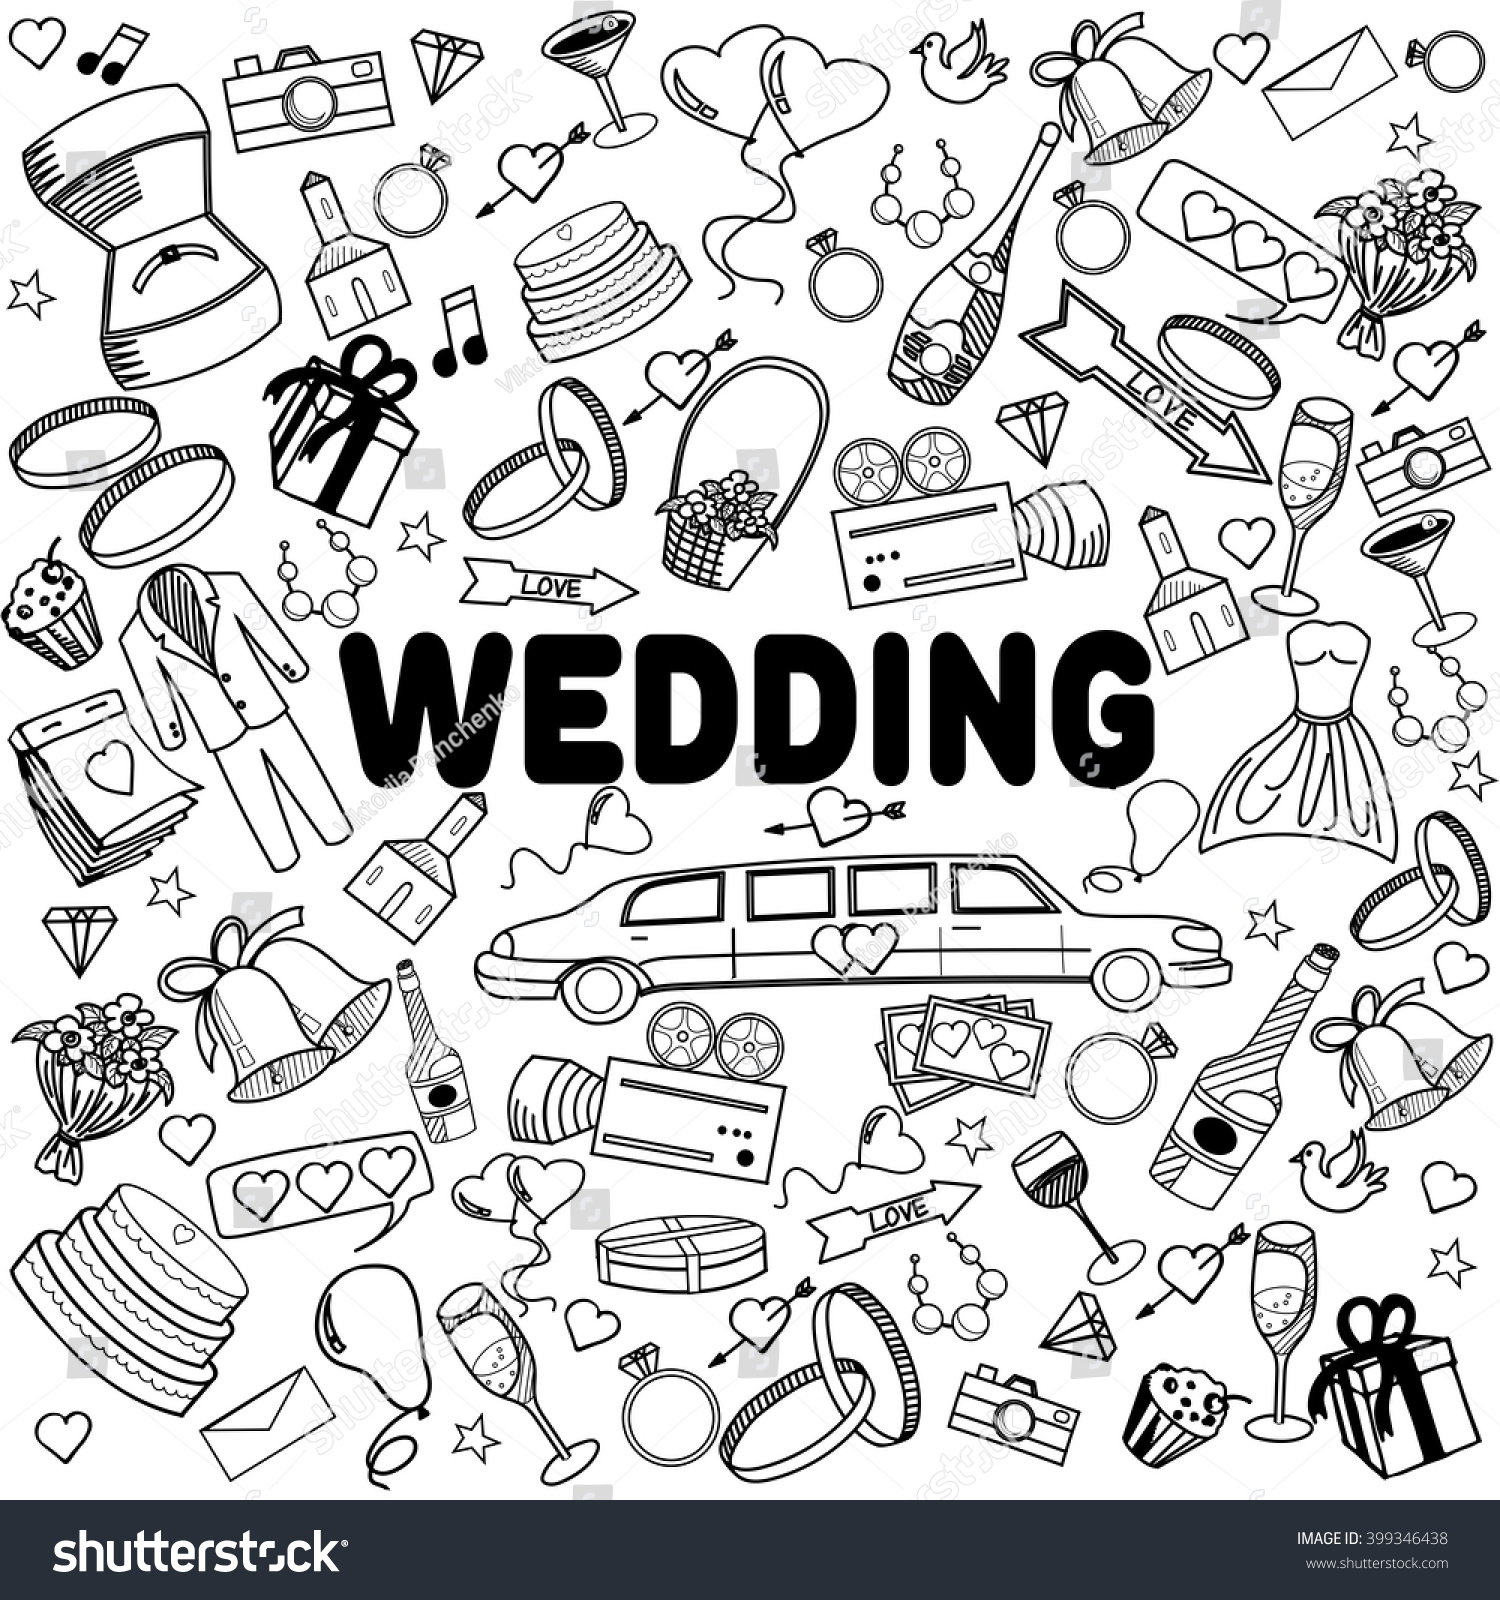 Wedding Coloring Book Line Art Design Stock Vector (Royalty Free ...